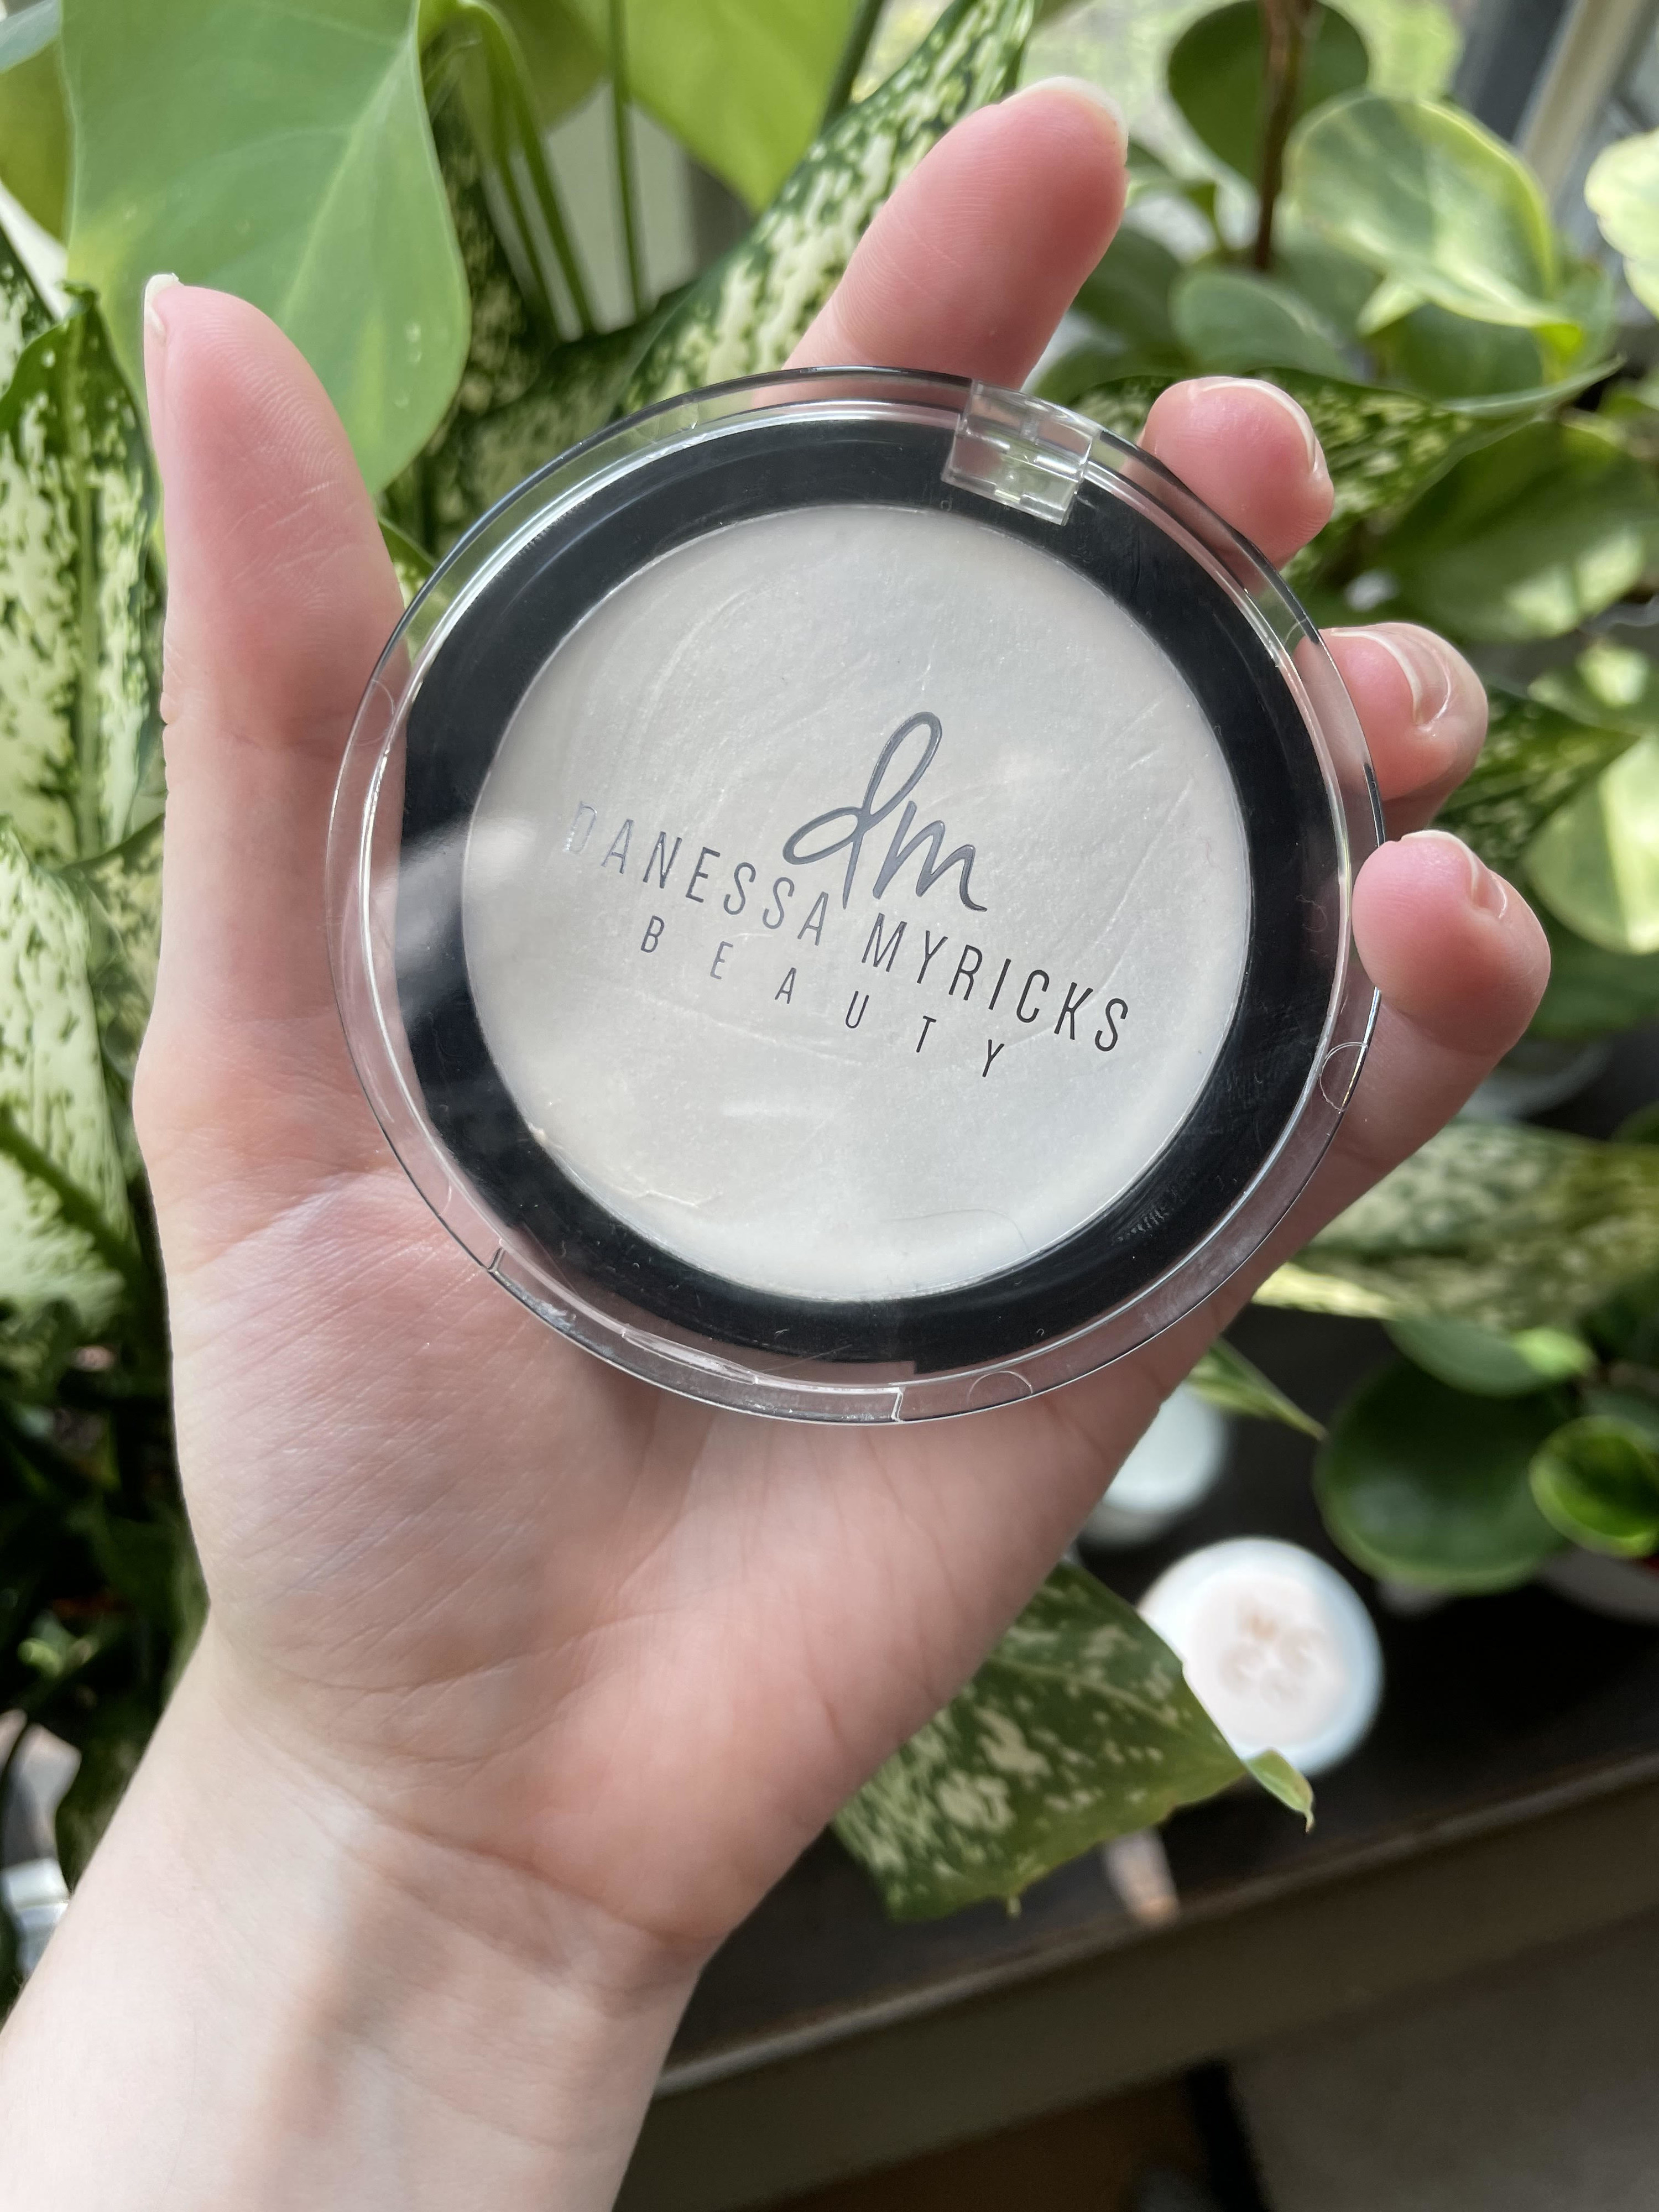 A person holding the compact of highlighter in front of plants